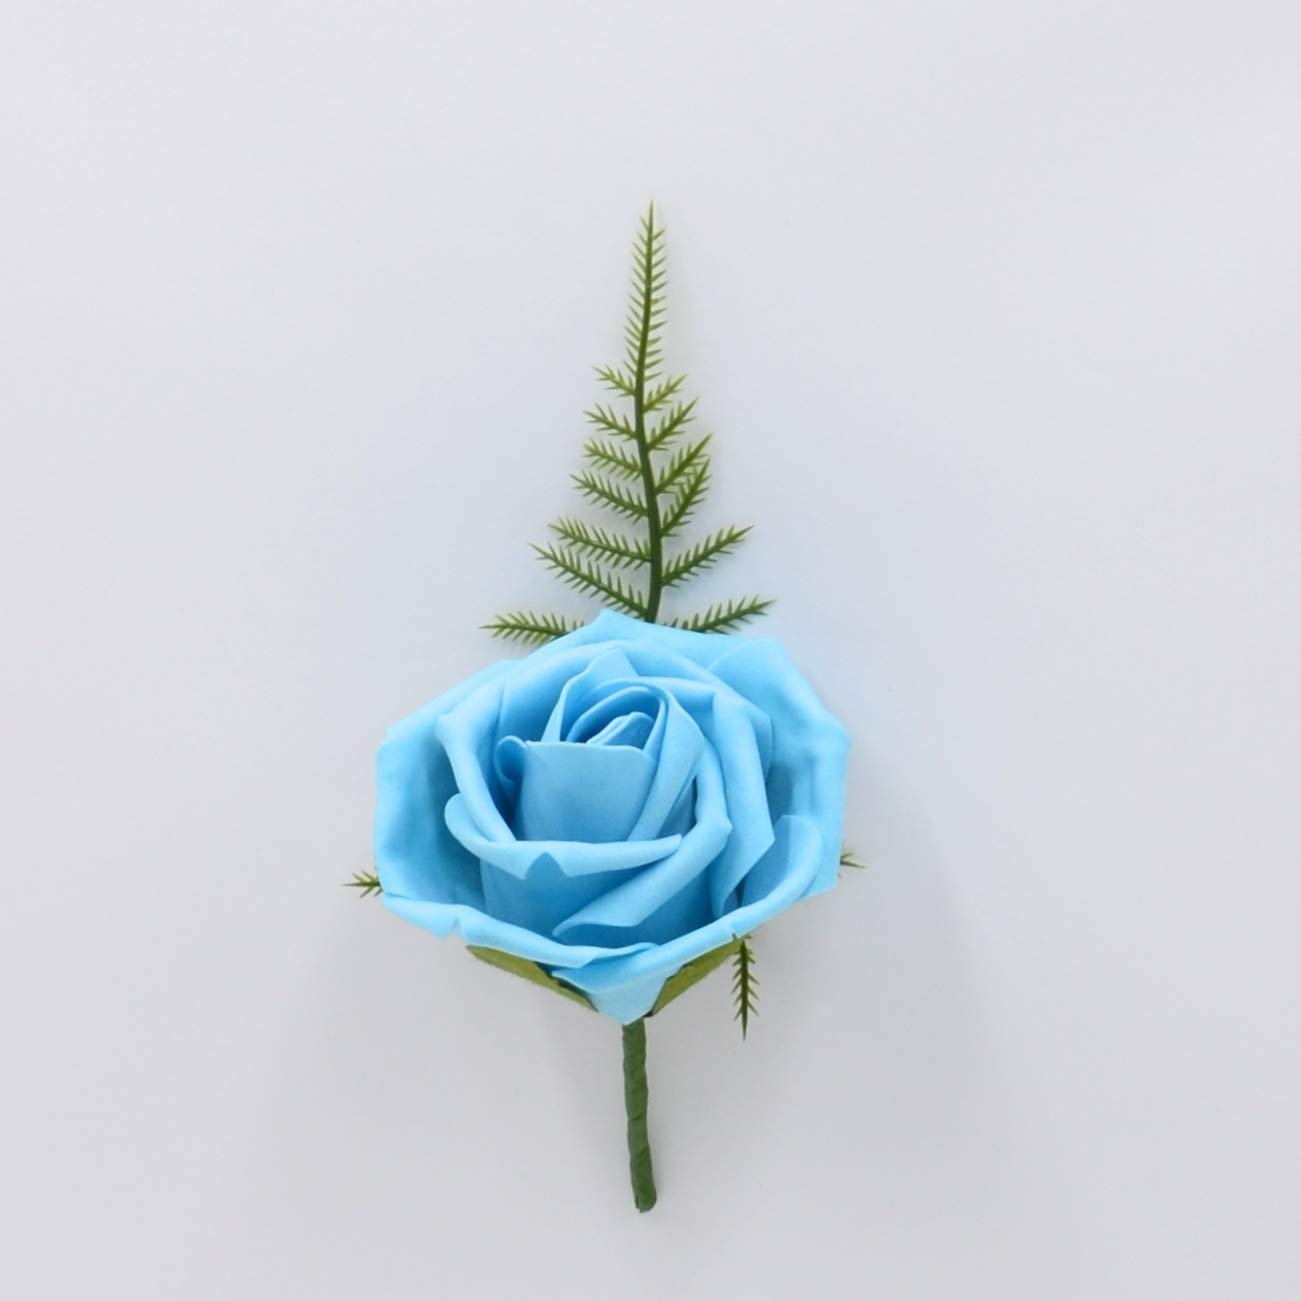 Artificial Wedding Flowers Hand-Made by Petals Polly, Foam Rose Buttonhole in Aqua PETALS POLLY FLOWERS